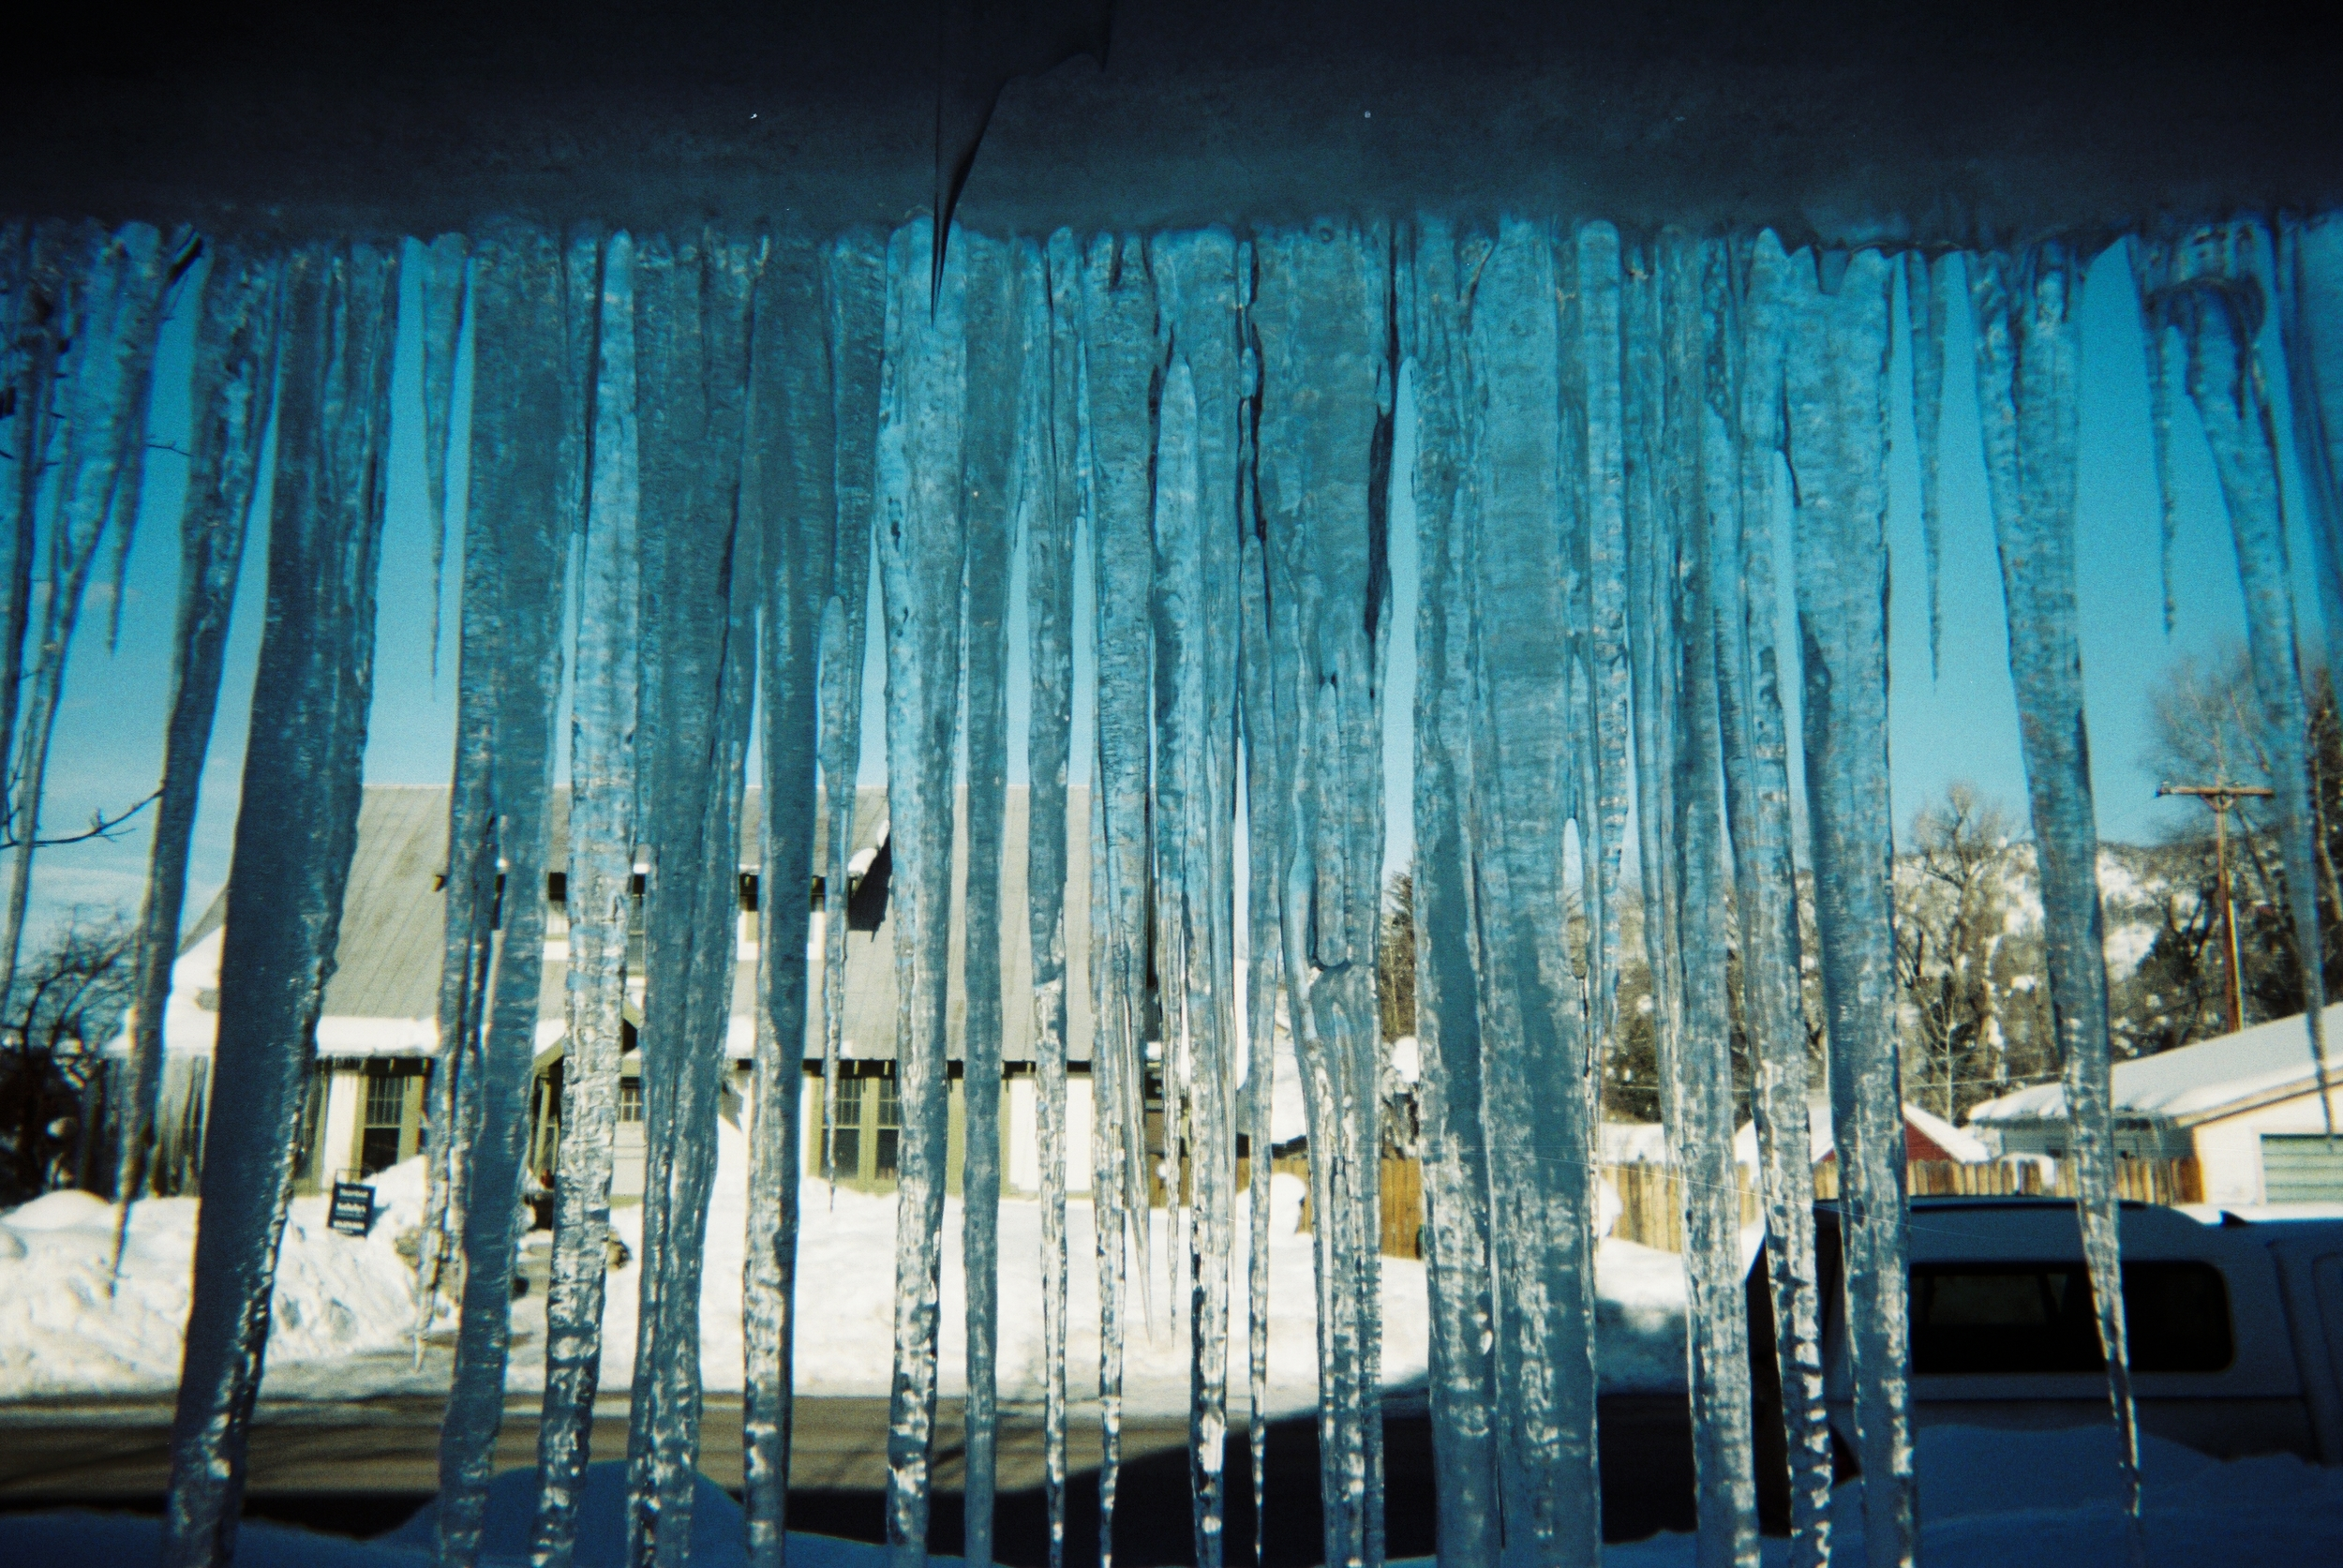 CAUTION  I have always loved icicles, the bigger the better. I think I'm drawn to them the way I am drawn to many things that are beautiful and dangerous. A spiritual life that draws us closer to God is not always safe but it usually leads us to somewhere beautiful.  -Rebecca Crummey